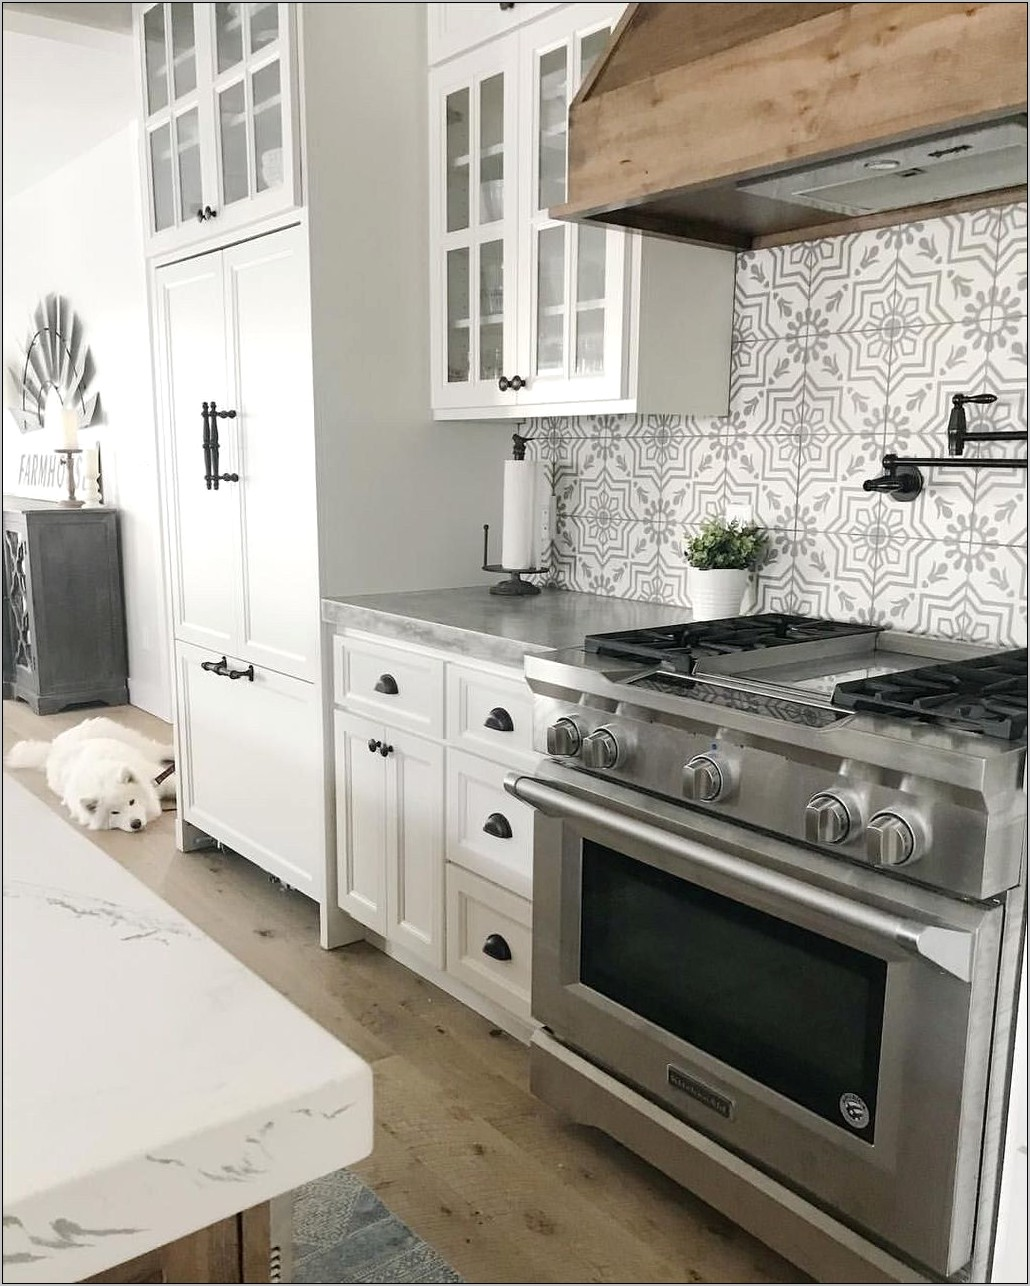 Home And Decor Kitchen Backsplash Tiles